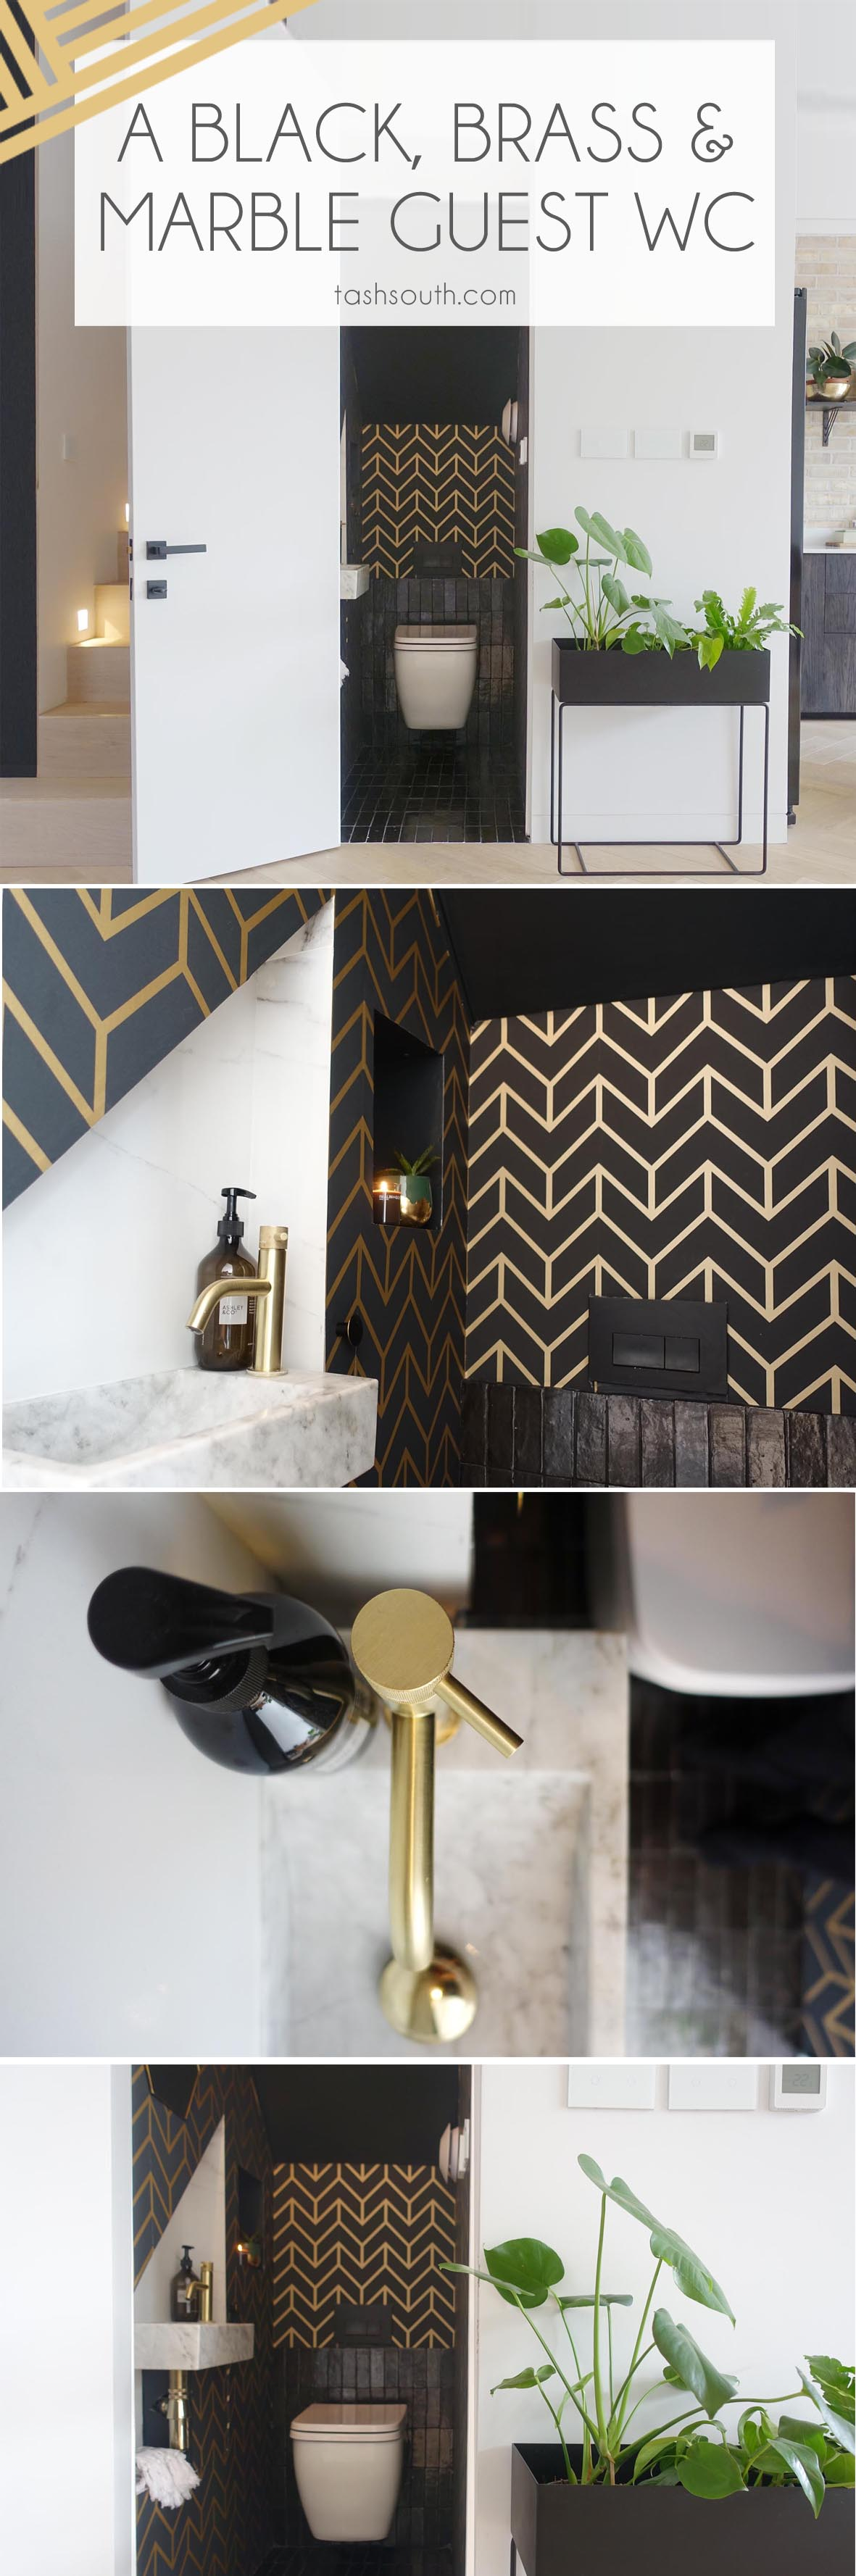 BLACK, BRASS AND MARBLE GUEST WC